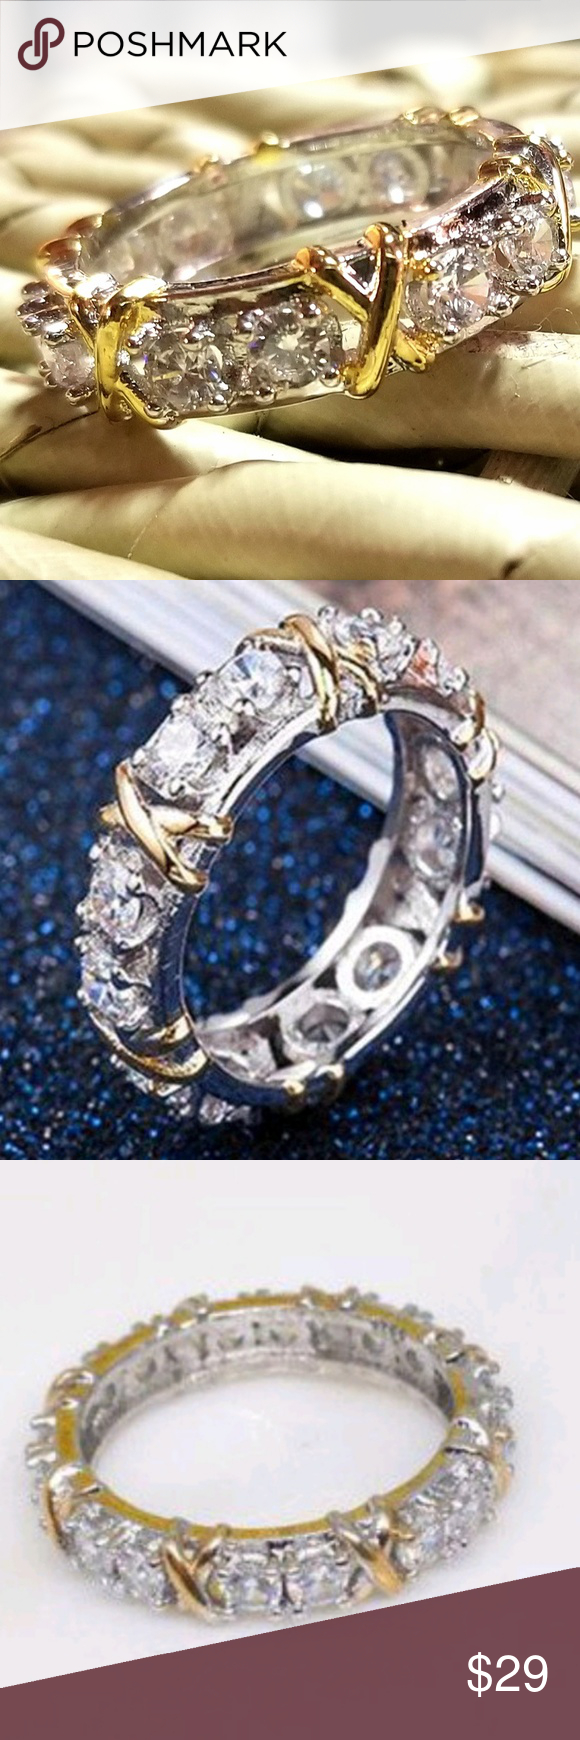 6 Ctw Clear Topaz Olive Crown Ring Nwt Genuine Sparkling Clear Topaz Pertaining To Most Current Clear Sparkling Crown Rings (View 1 of 25)